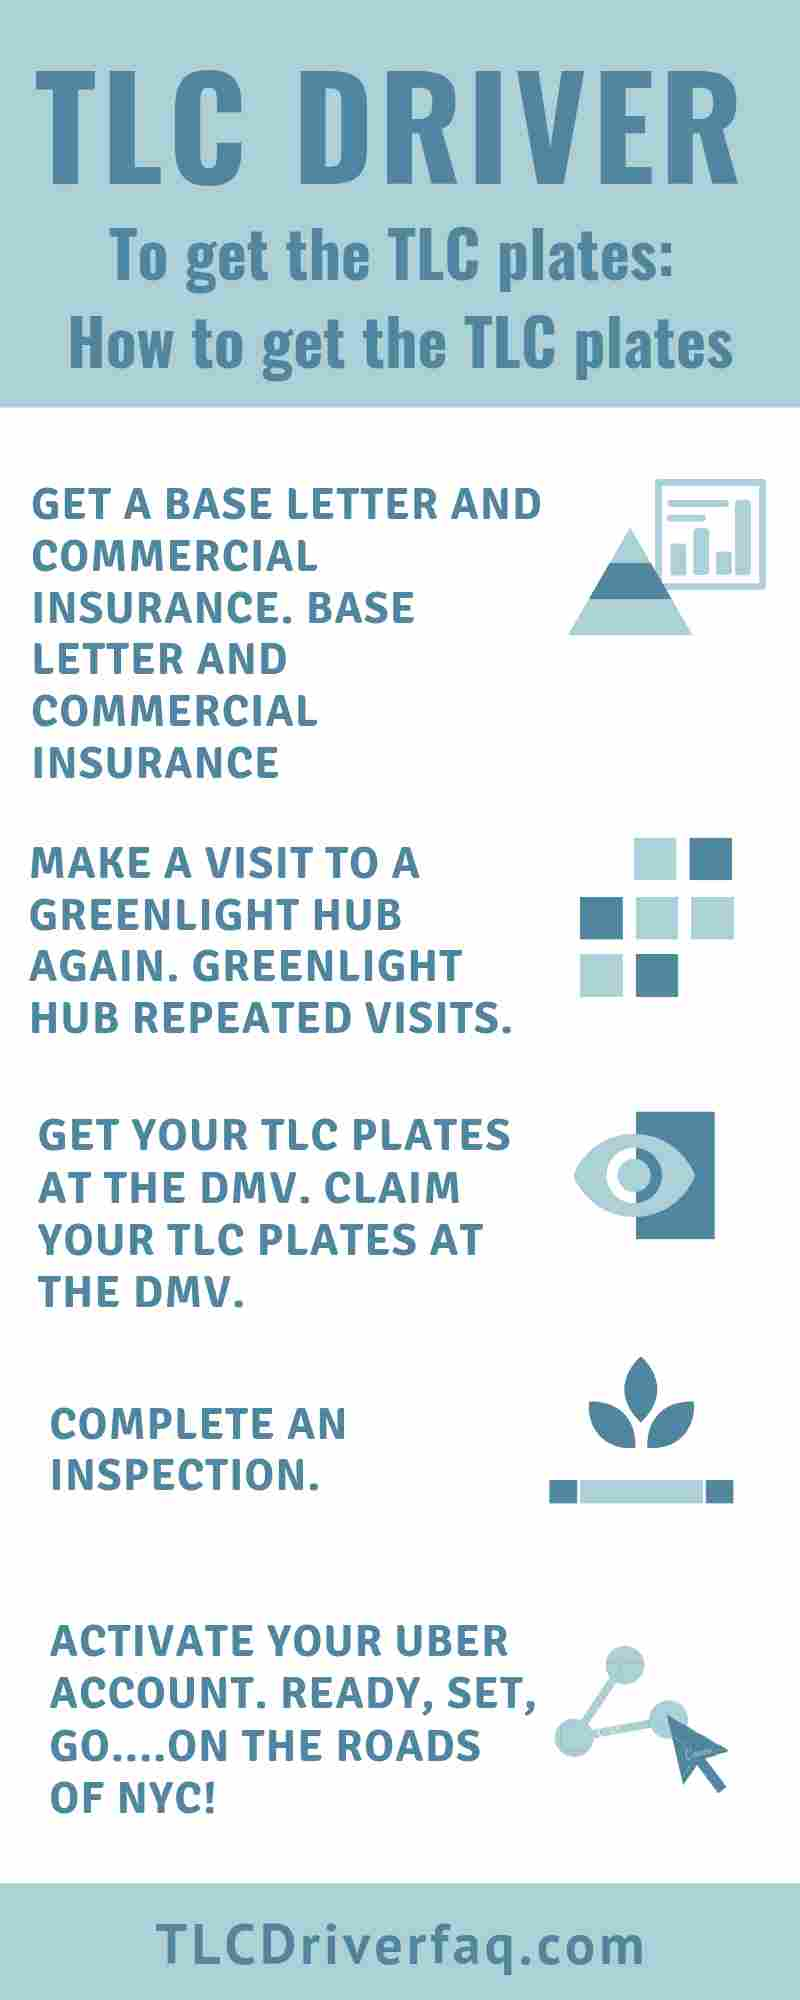 How Much Does It Cost To Get Tlc Plates - How to Get Your